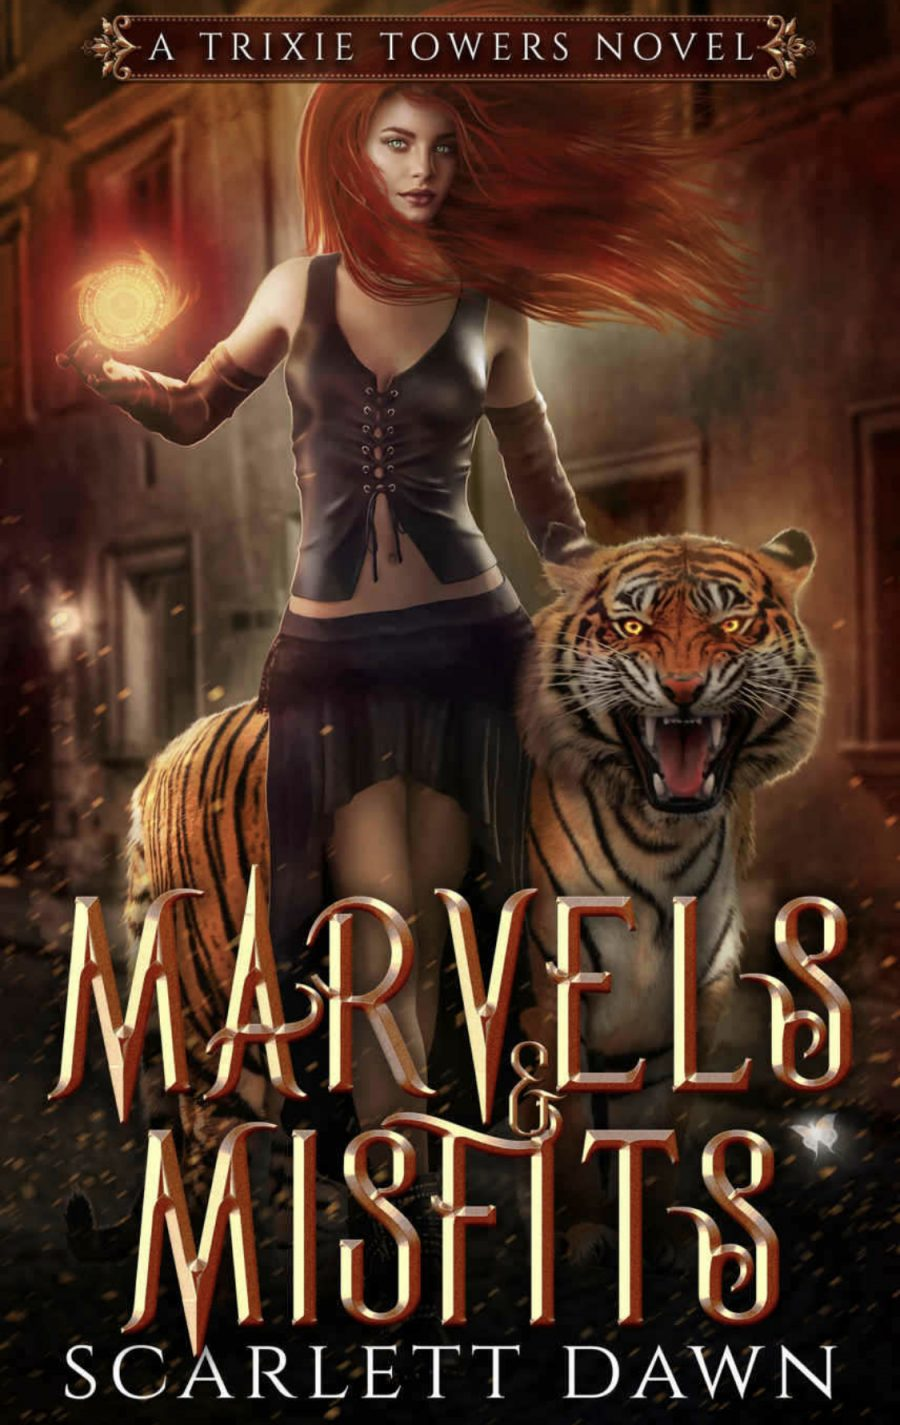 Marvels & Misfits by Scarlett Dawn - A Book Review #BookReview #Fantasy #Adventure #Elves #Shifters #Misfits #Realms #NewRelease #WouldRecommend #5Star #KU